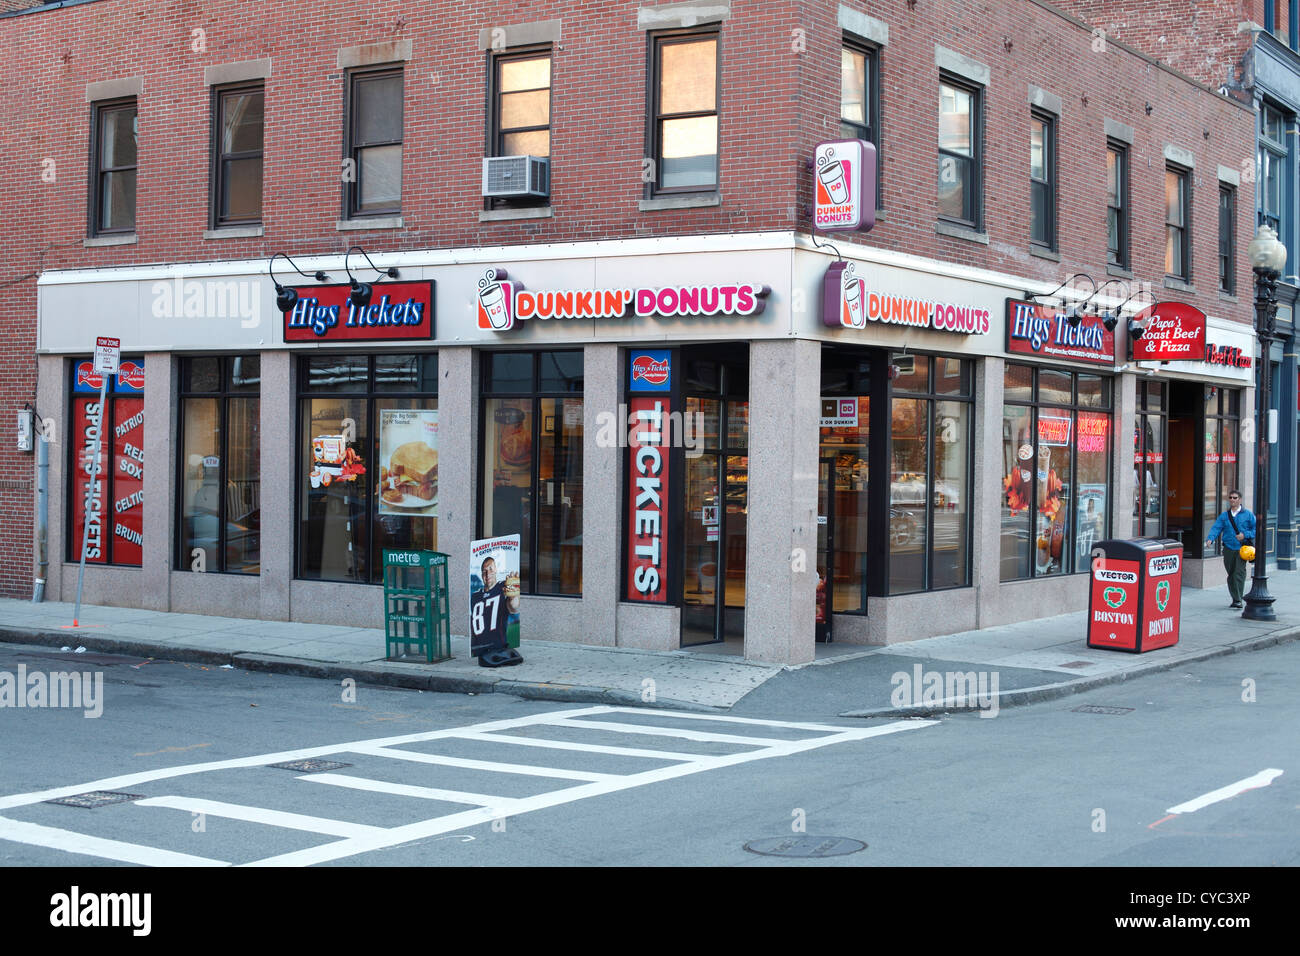 Dunkin Donuts Franchise Fast Food Donut Shop With Higs Tickets On ...